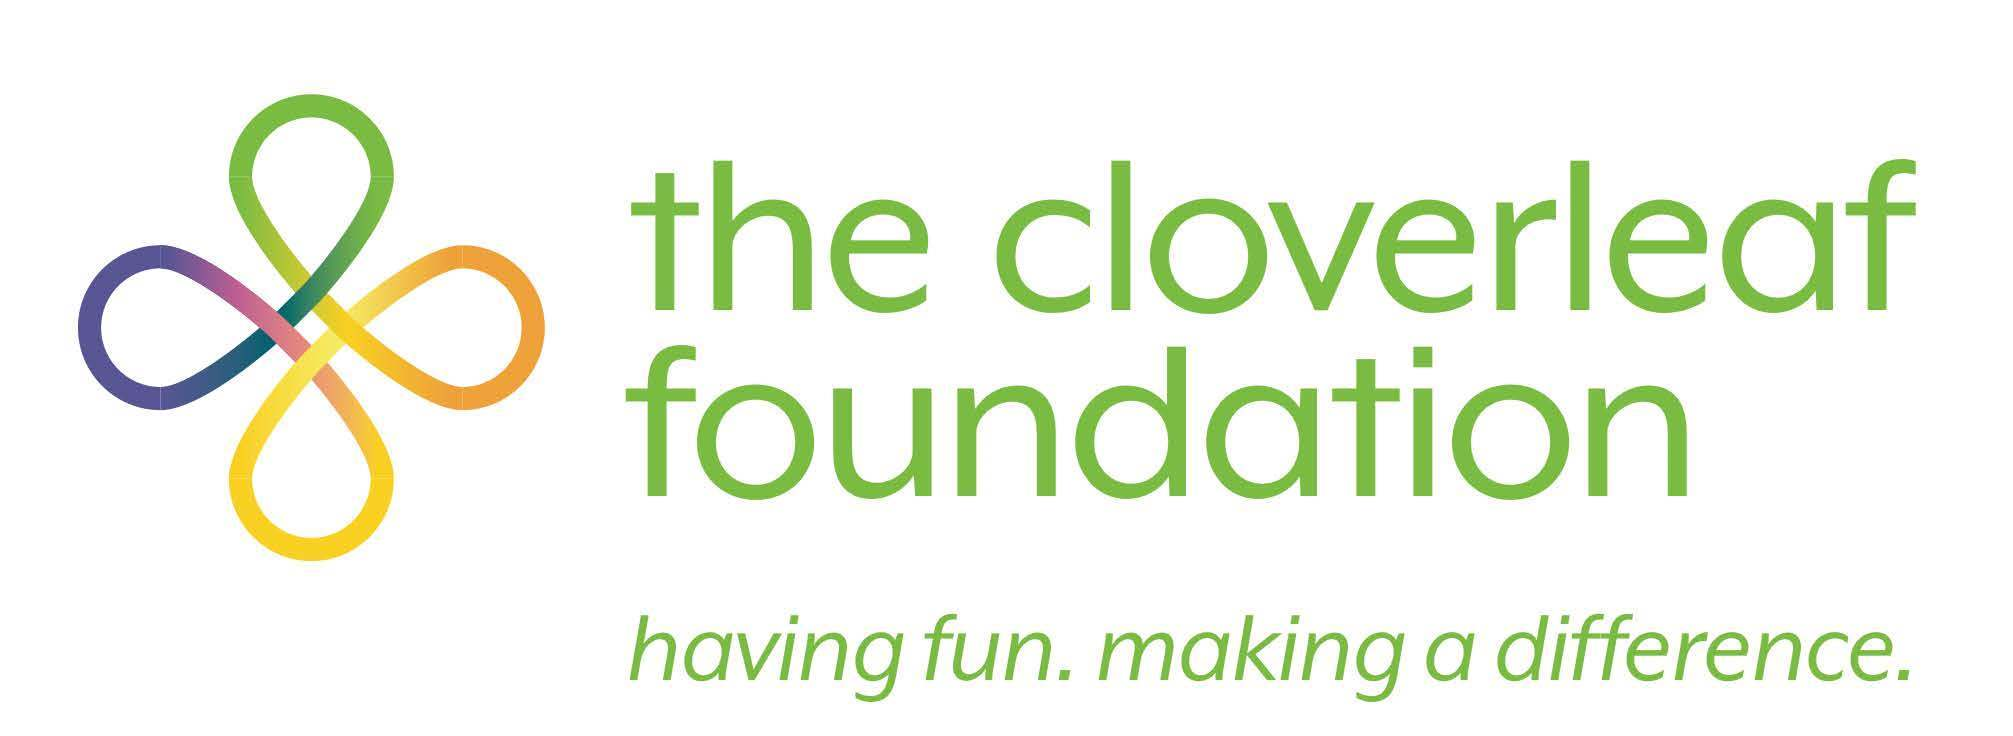 Cloverleaf foundation